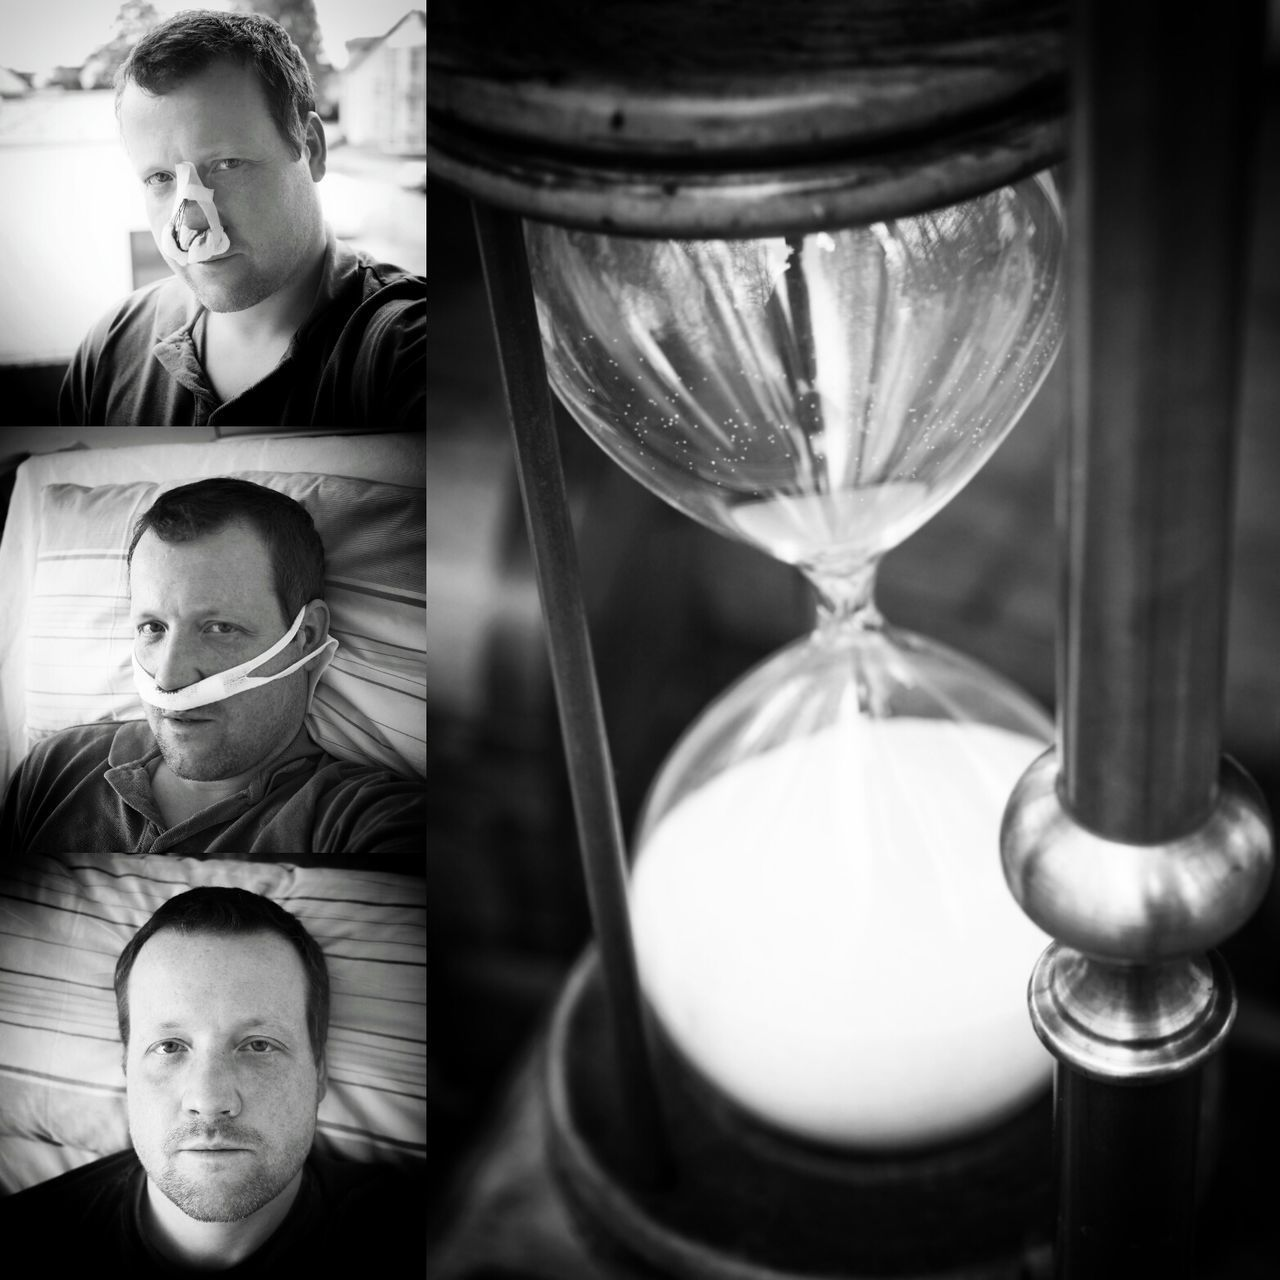 """Time is a healer"", they say, and time itself told me it's true. - MAinLoveWithLightAndShadow Nose Surgery Pain Wounds Time Healer Healing Hourglass Sandglass Black And White Bnw Bnw_collection Bnw_captures Bnw_life Bnw Photography Bnw_maniac Self Portrait Self Selfie Thats Me  Seeing The World Differently Heads Up As Time Goes By How I See Things - 17.05.2017 - #KarlHansenKlinik #BadLippspringe"